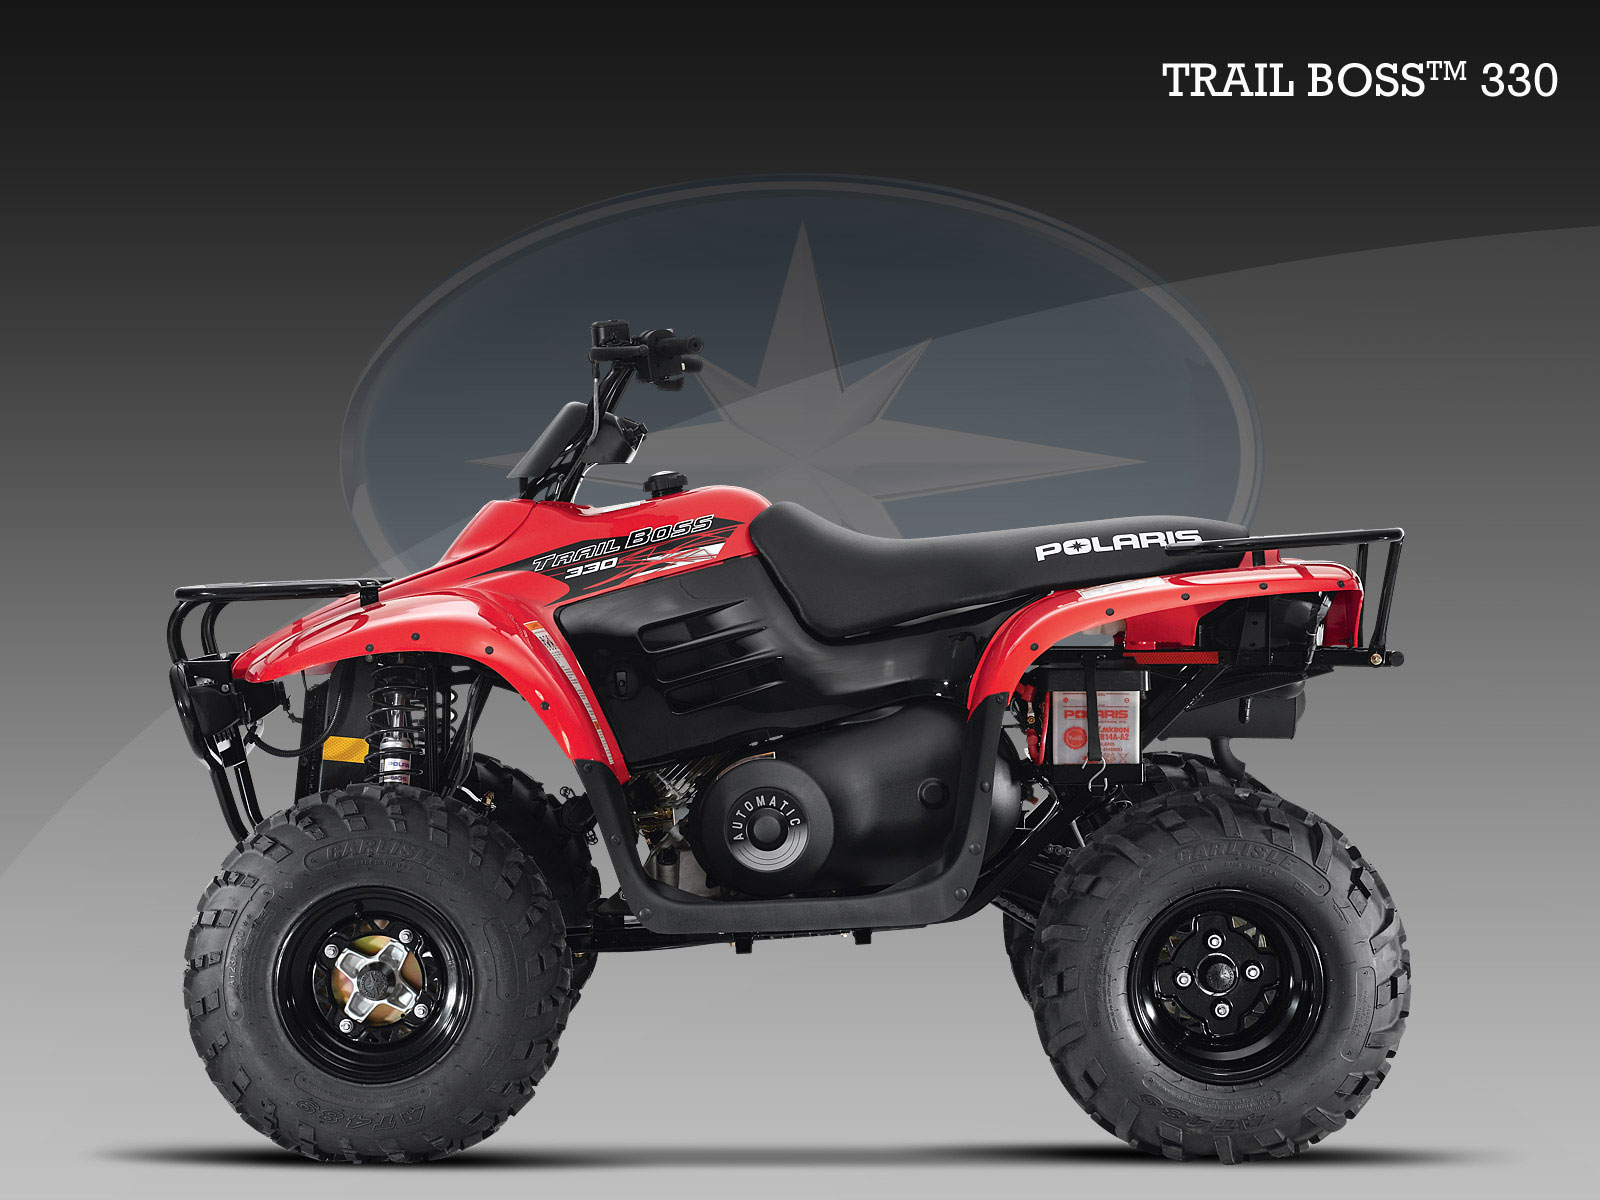 Polaris Trail Boss 330 2006 images #169514